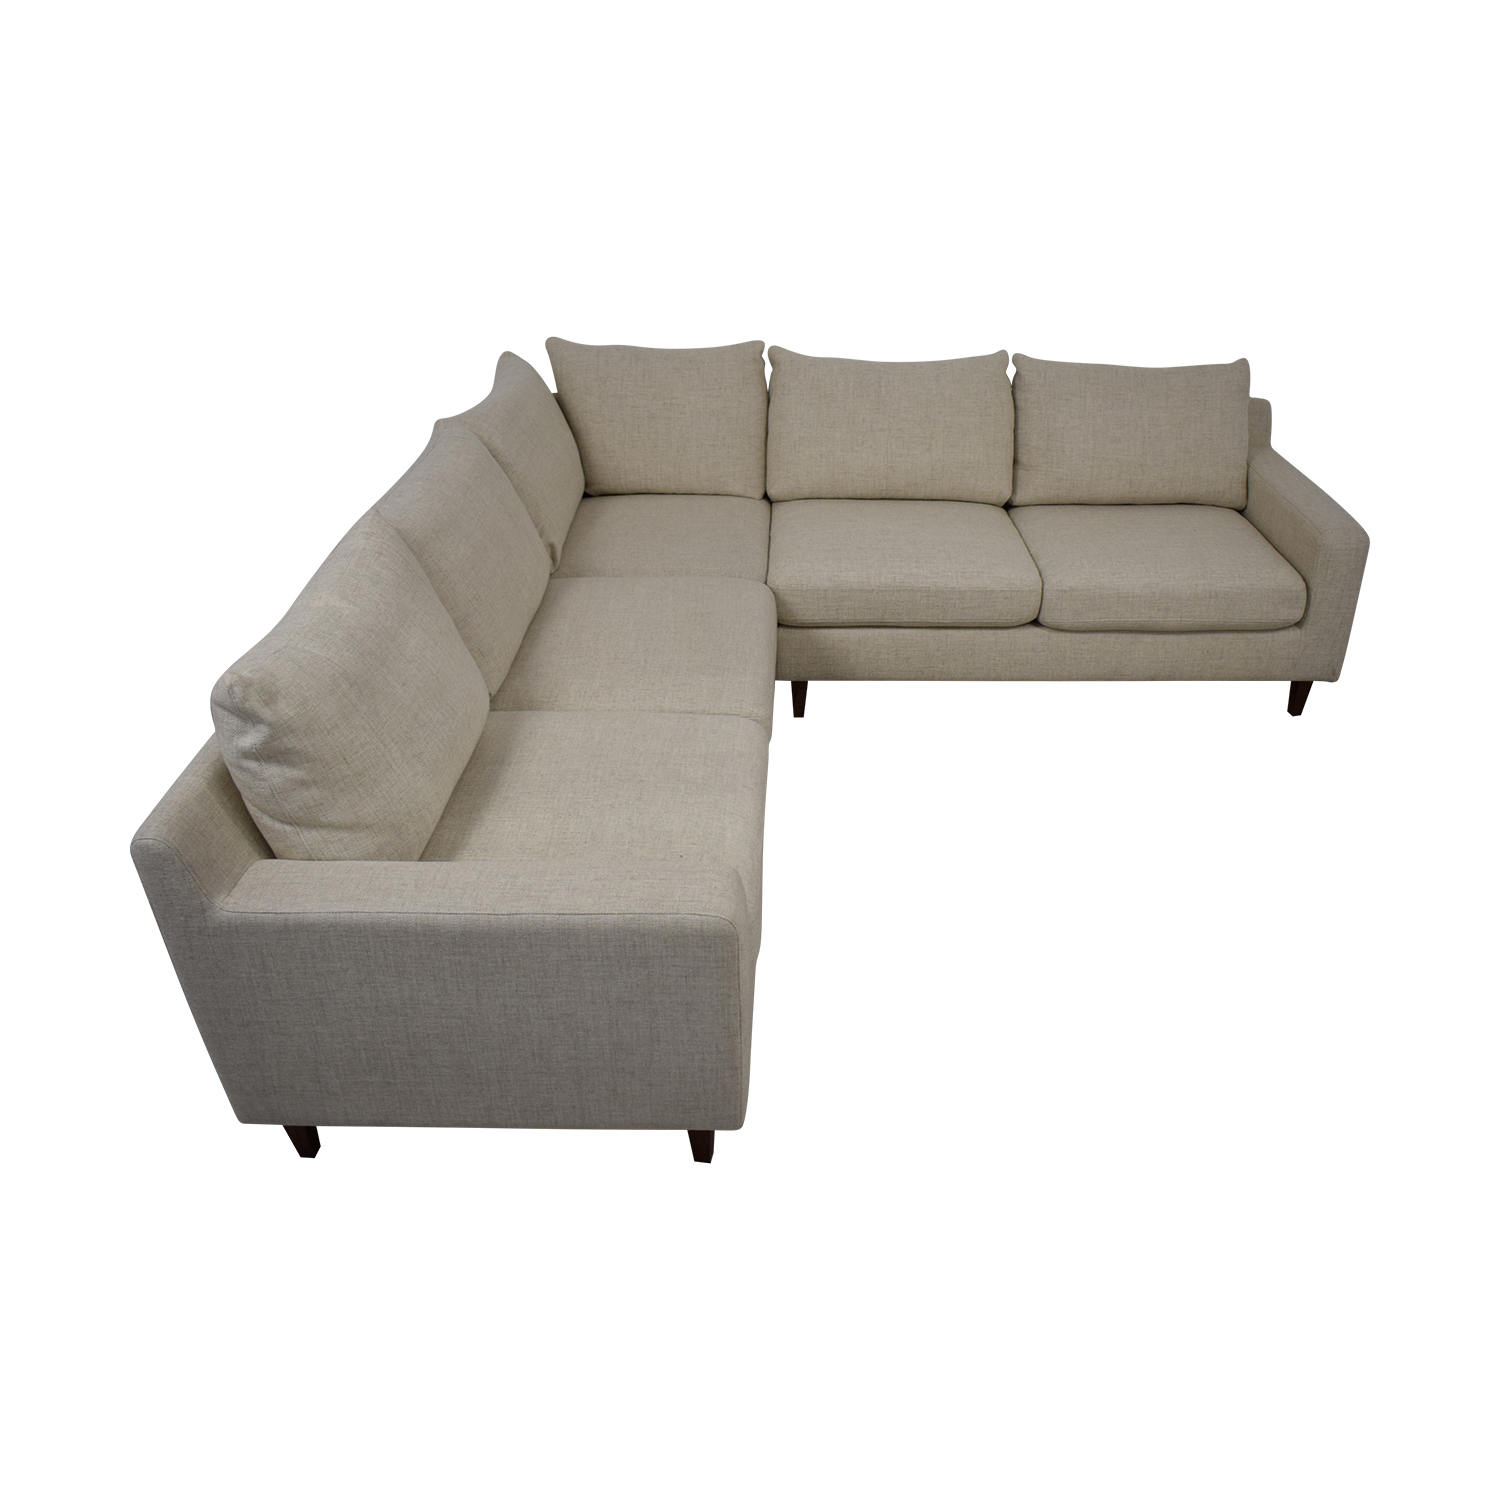 48% OFF - Sloan L-Shaped Sectional Sofa / Sofas